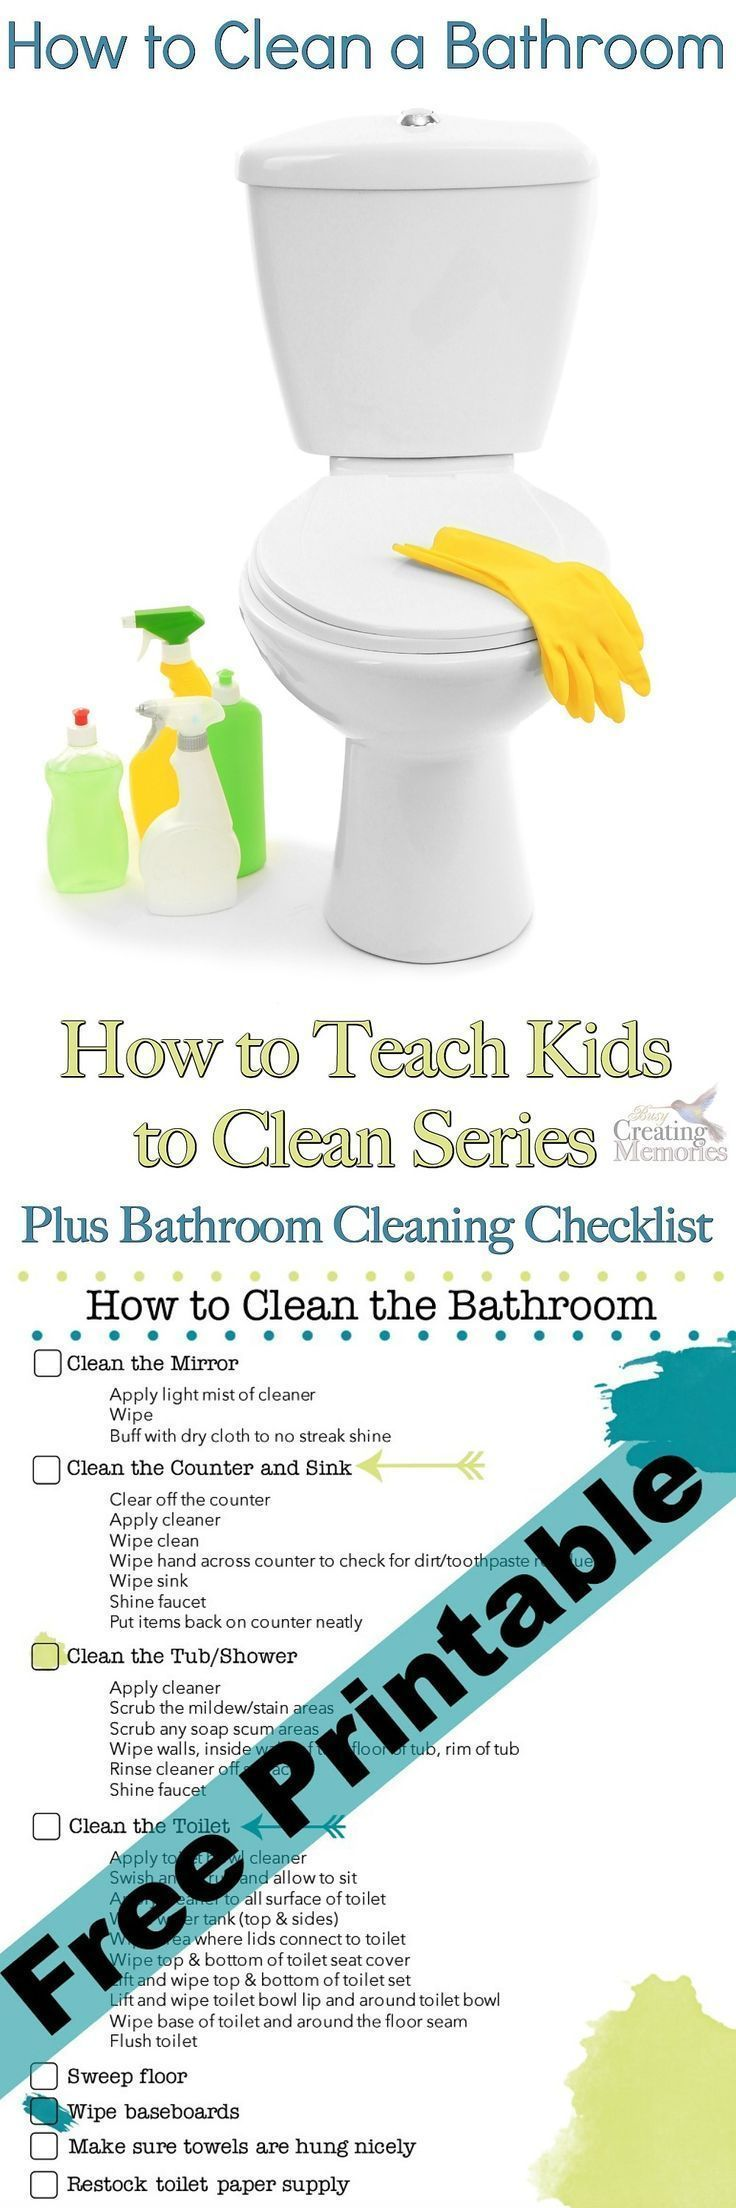 Cleaning Tips 697 best cleaning tips images on pinterest | cleaning hacks